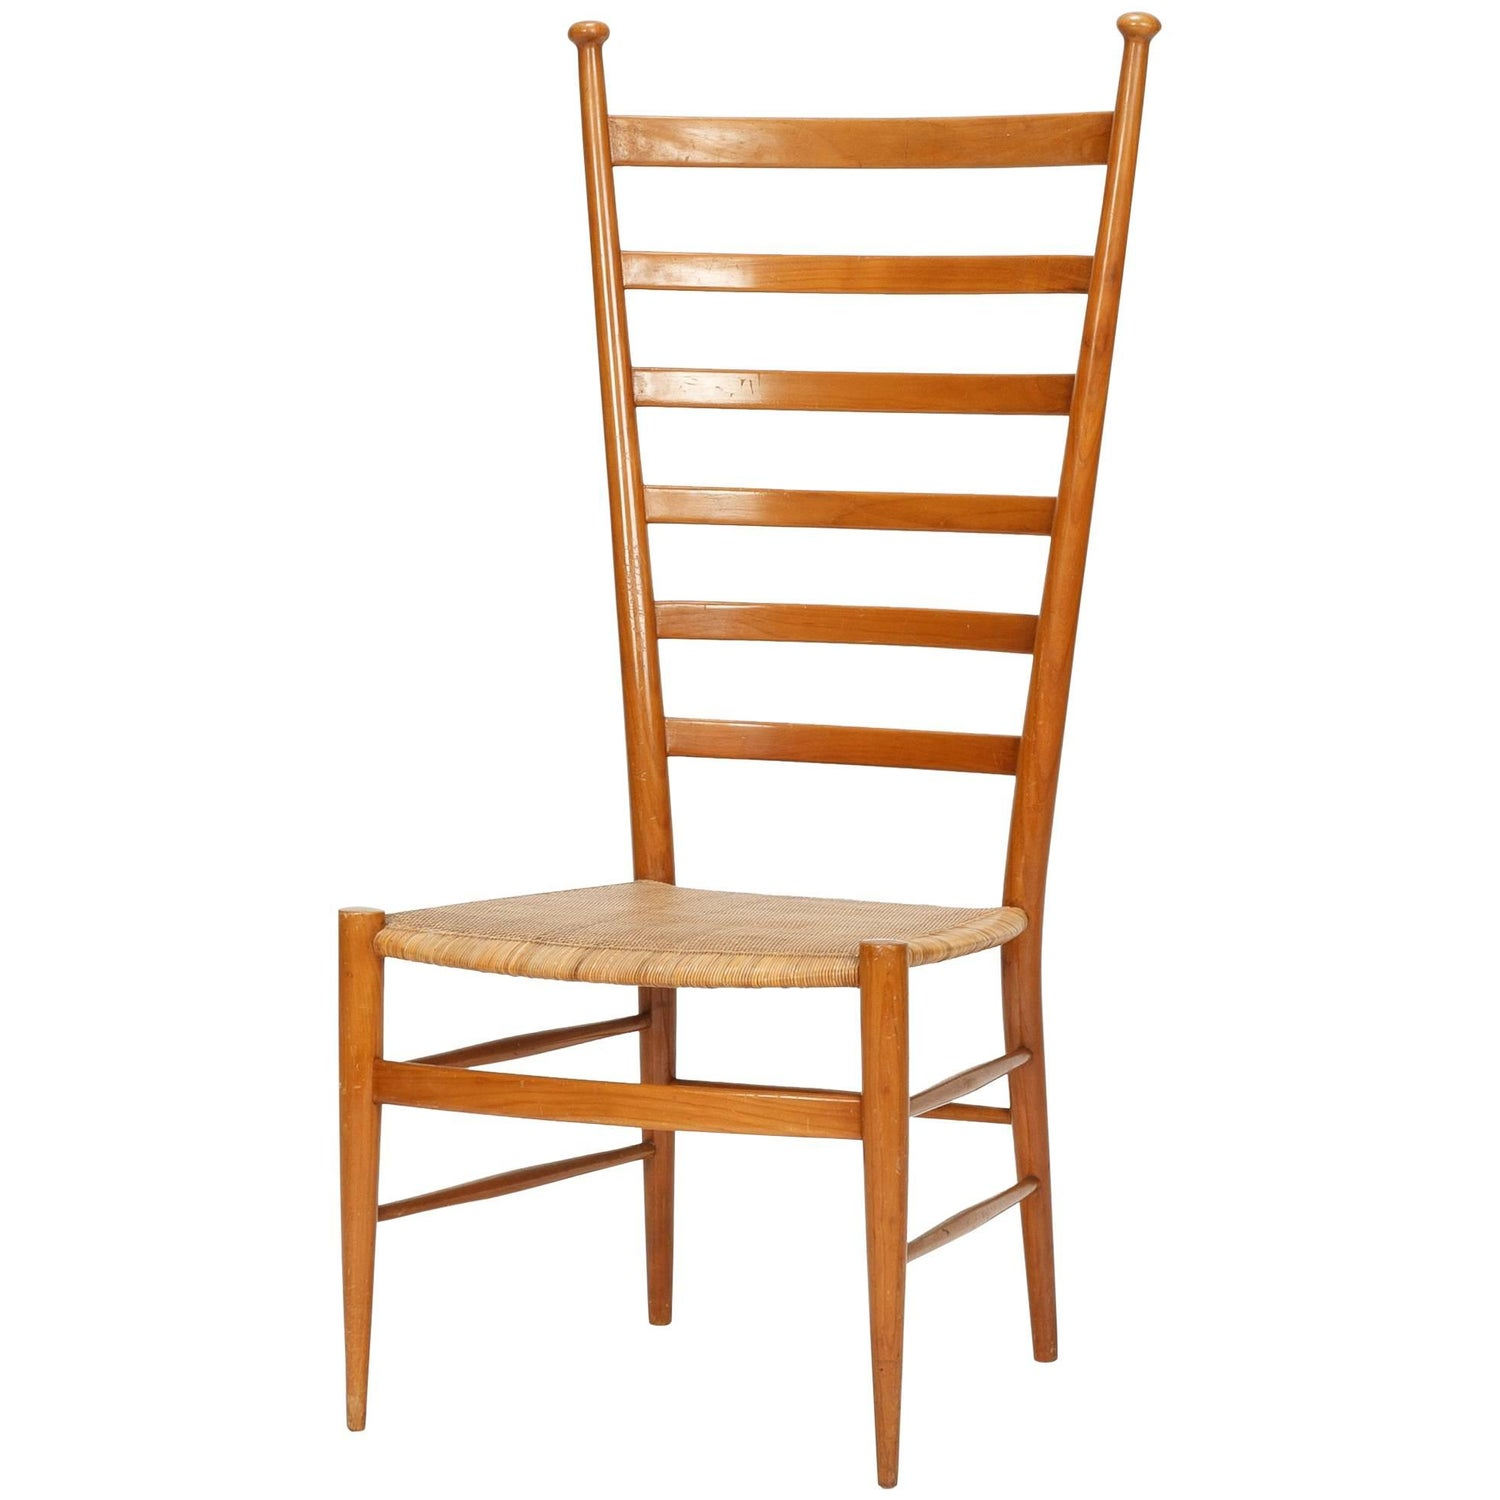 Sanguineti Chair Chiavari 1950s For Sale at 1stdibs